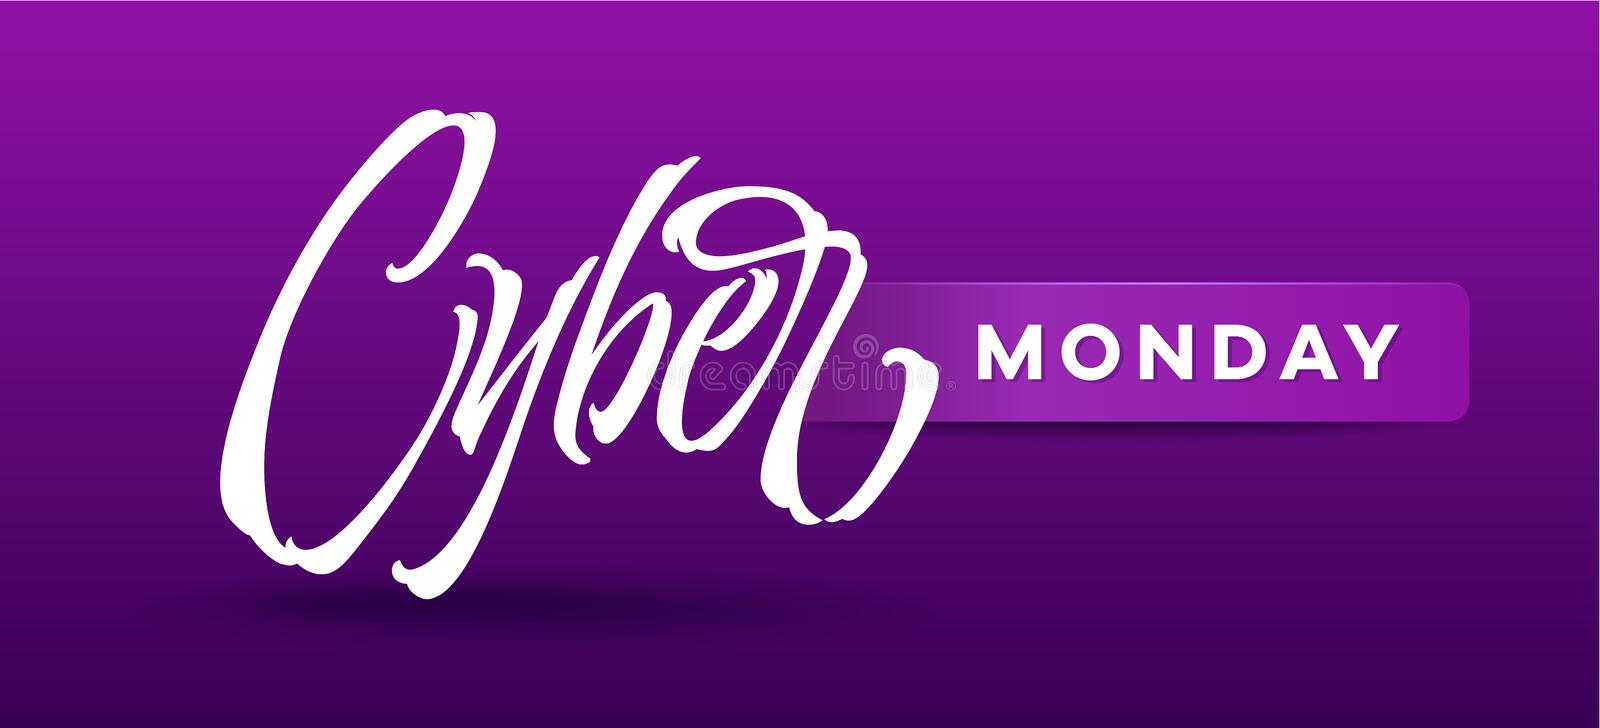 Cyber Monday typography for card, banners, ads, advertising brochures, booklet royalty free illustration